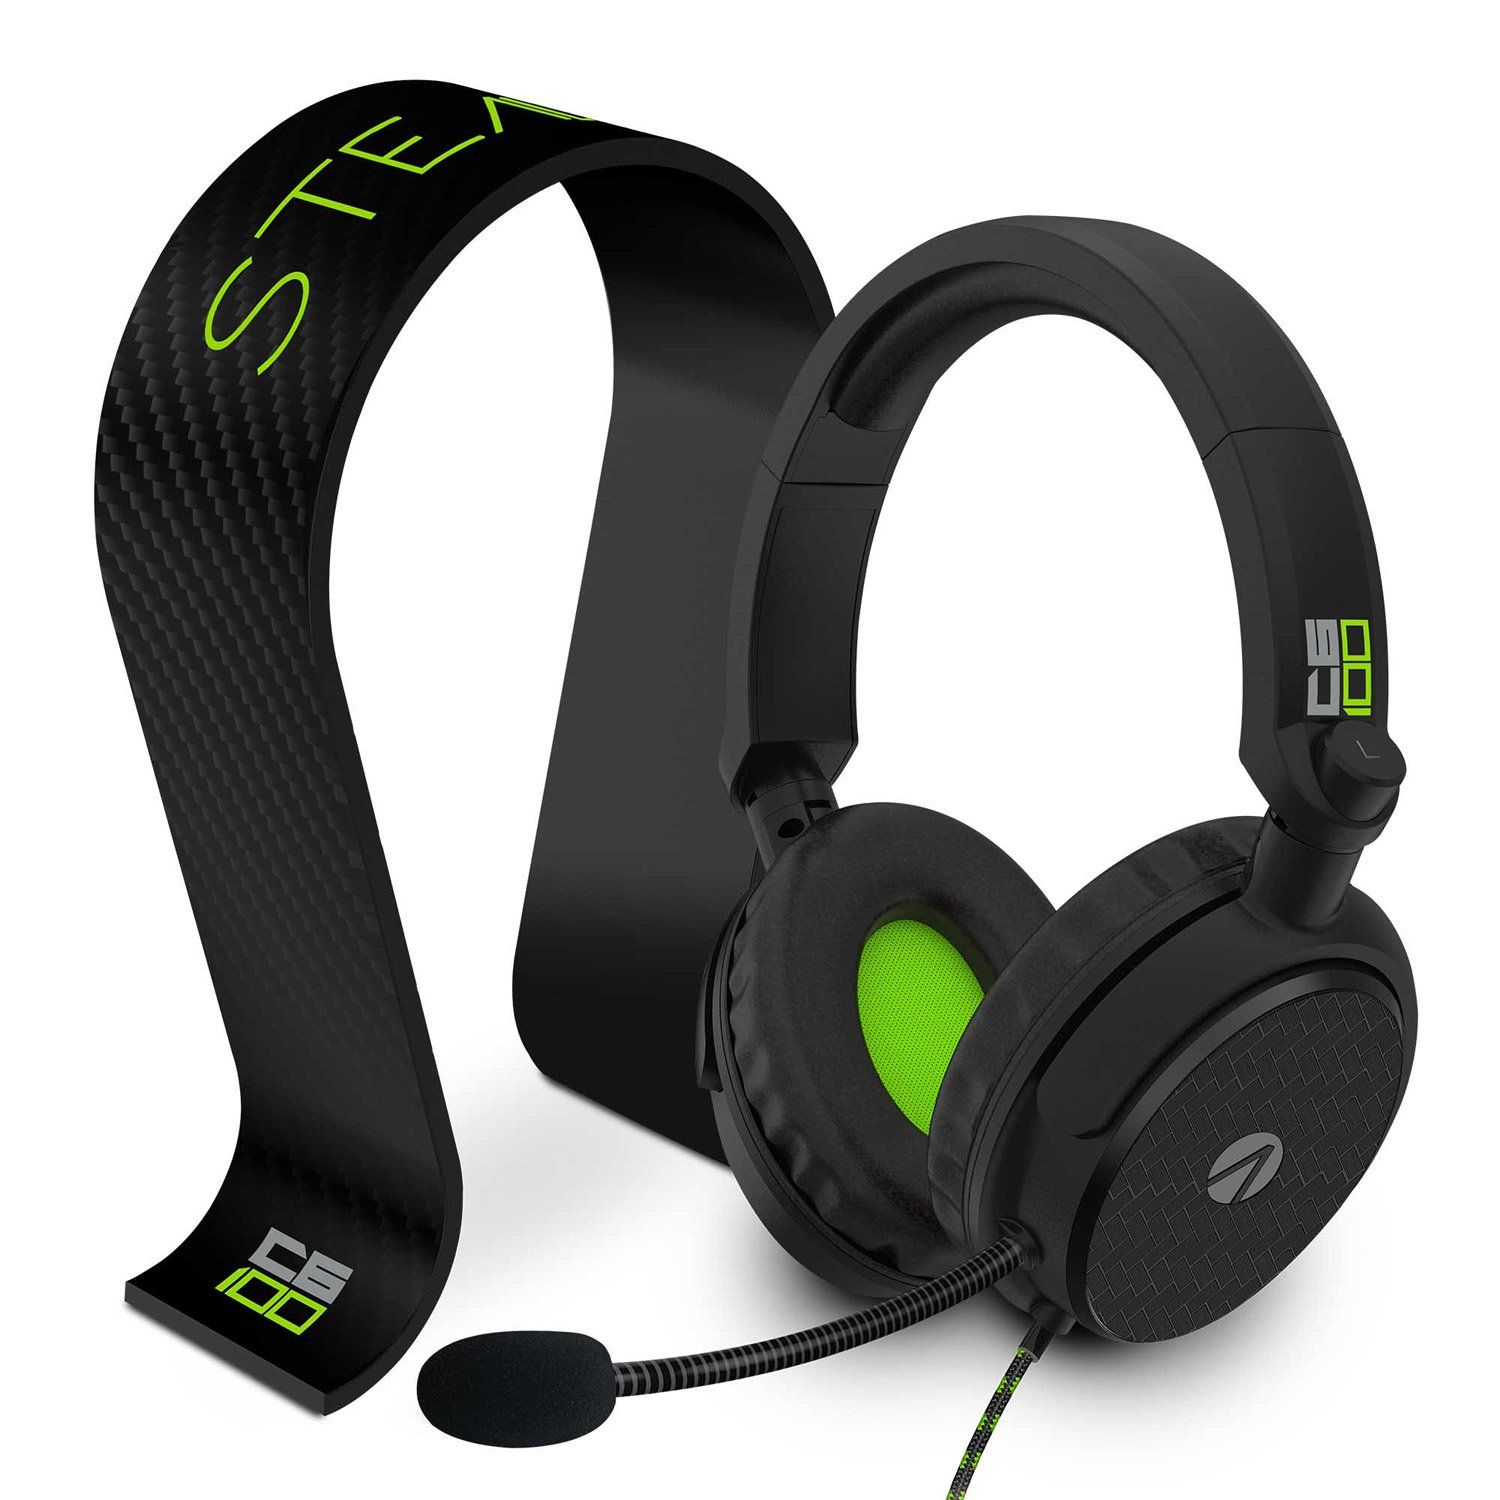 STEALTH C6-100 Stereo Gaming Headset & Stand - Black & Green